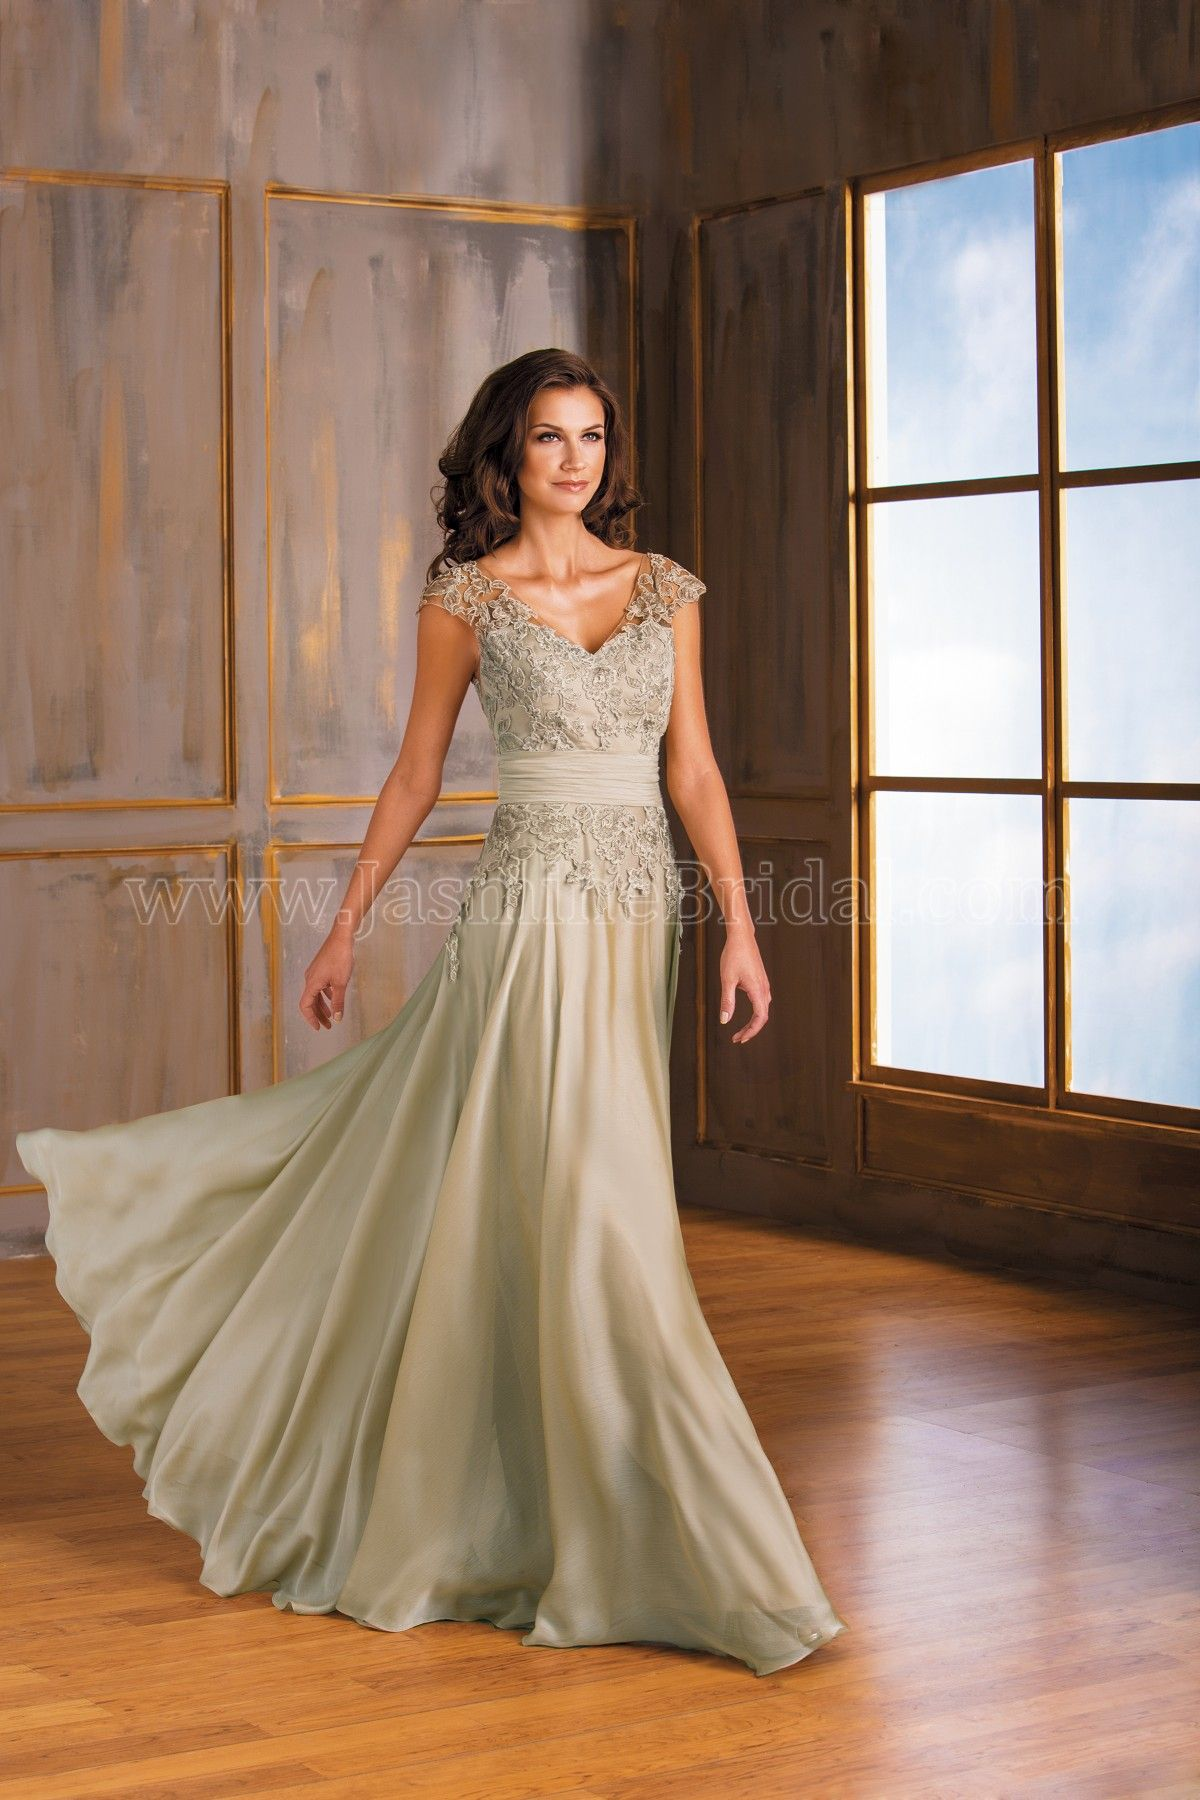 Next online party dresses - A Head Turner For Your Next Special Occasion In This Jade Tiffany Chiffon Dress Look Elegant In This Classic V Neckline And A Line Skirt Silhouette With